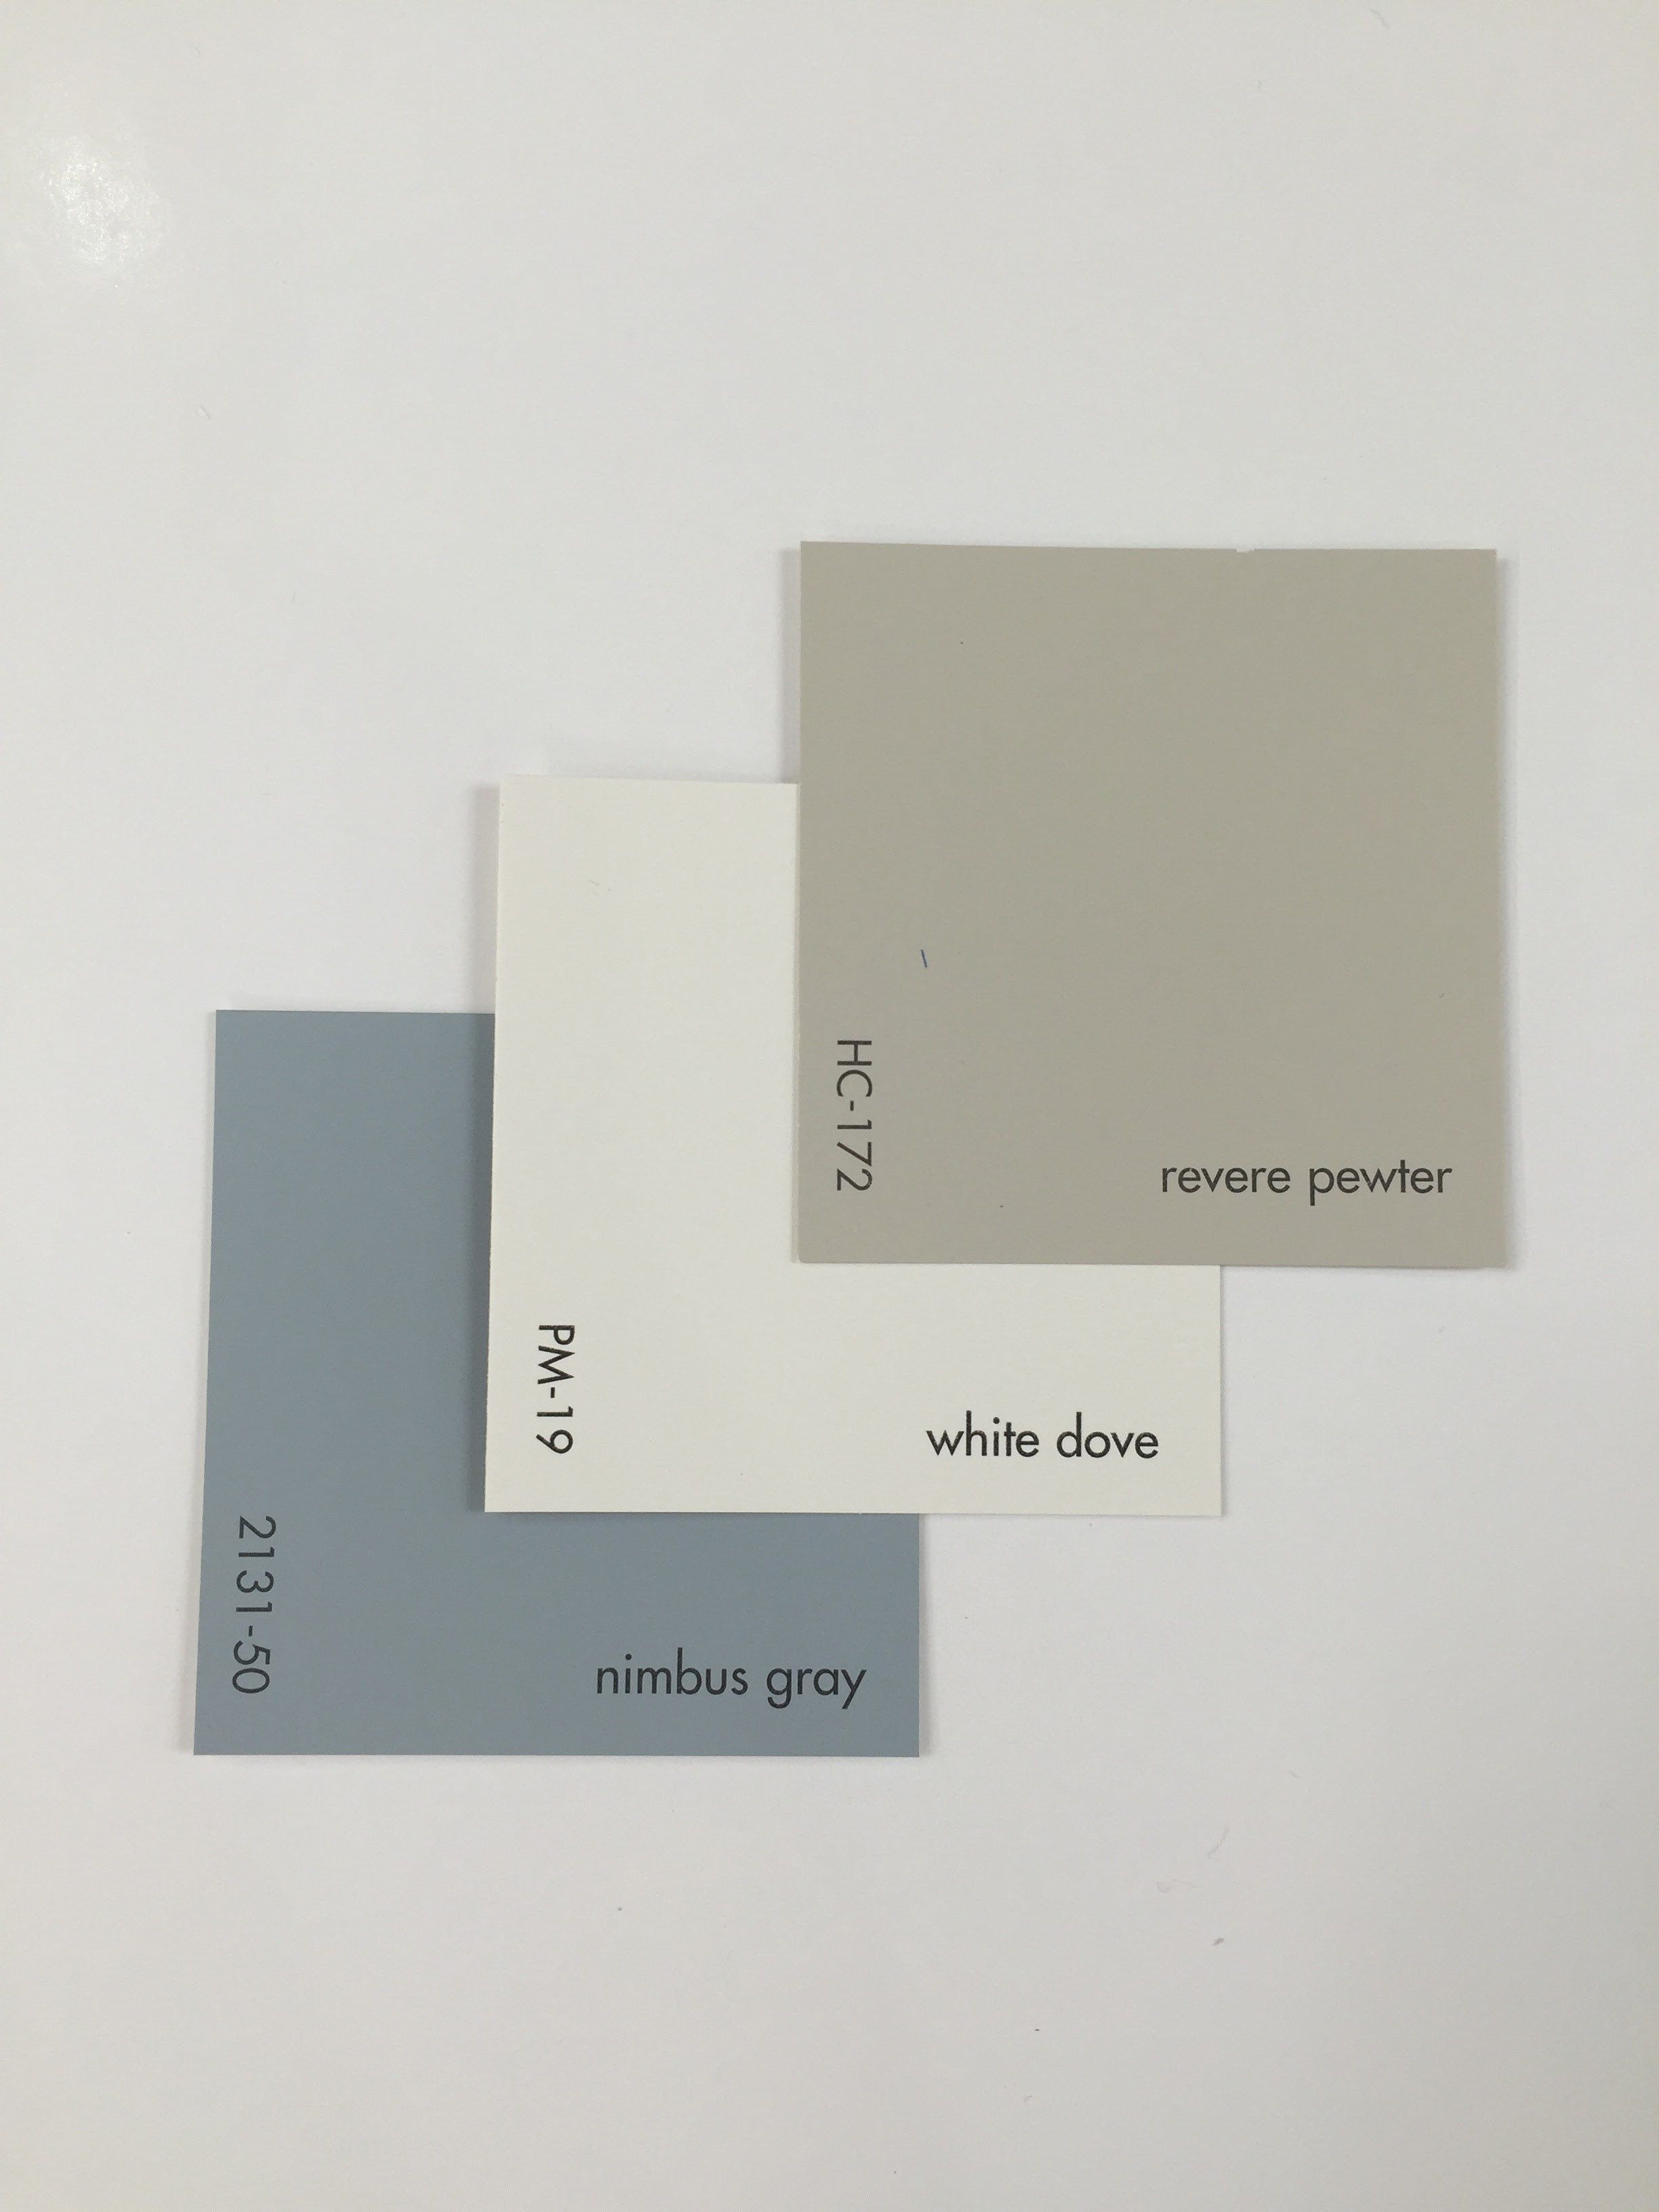 Benjamin Moore Timeless Neutrals Paint Color Schemes Has Neutral Colors They